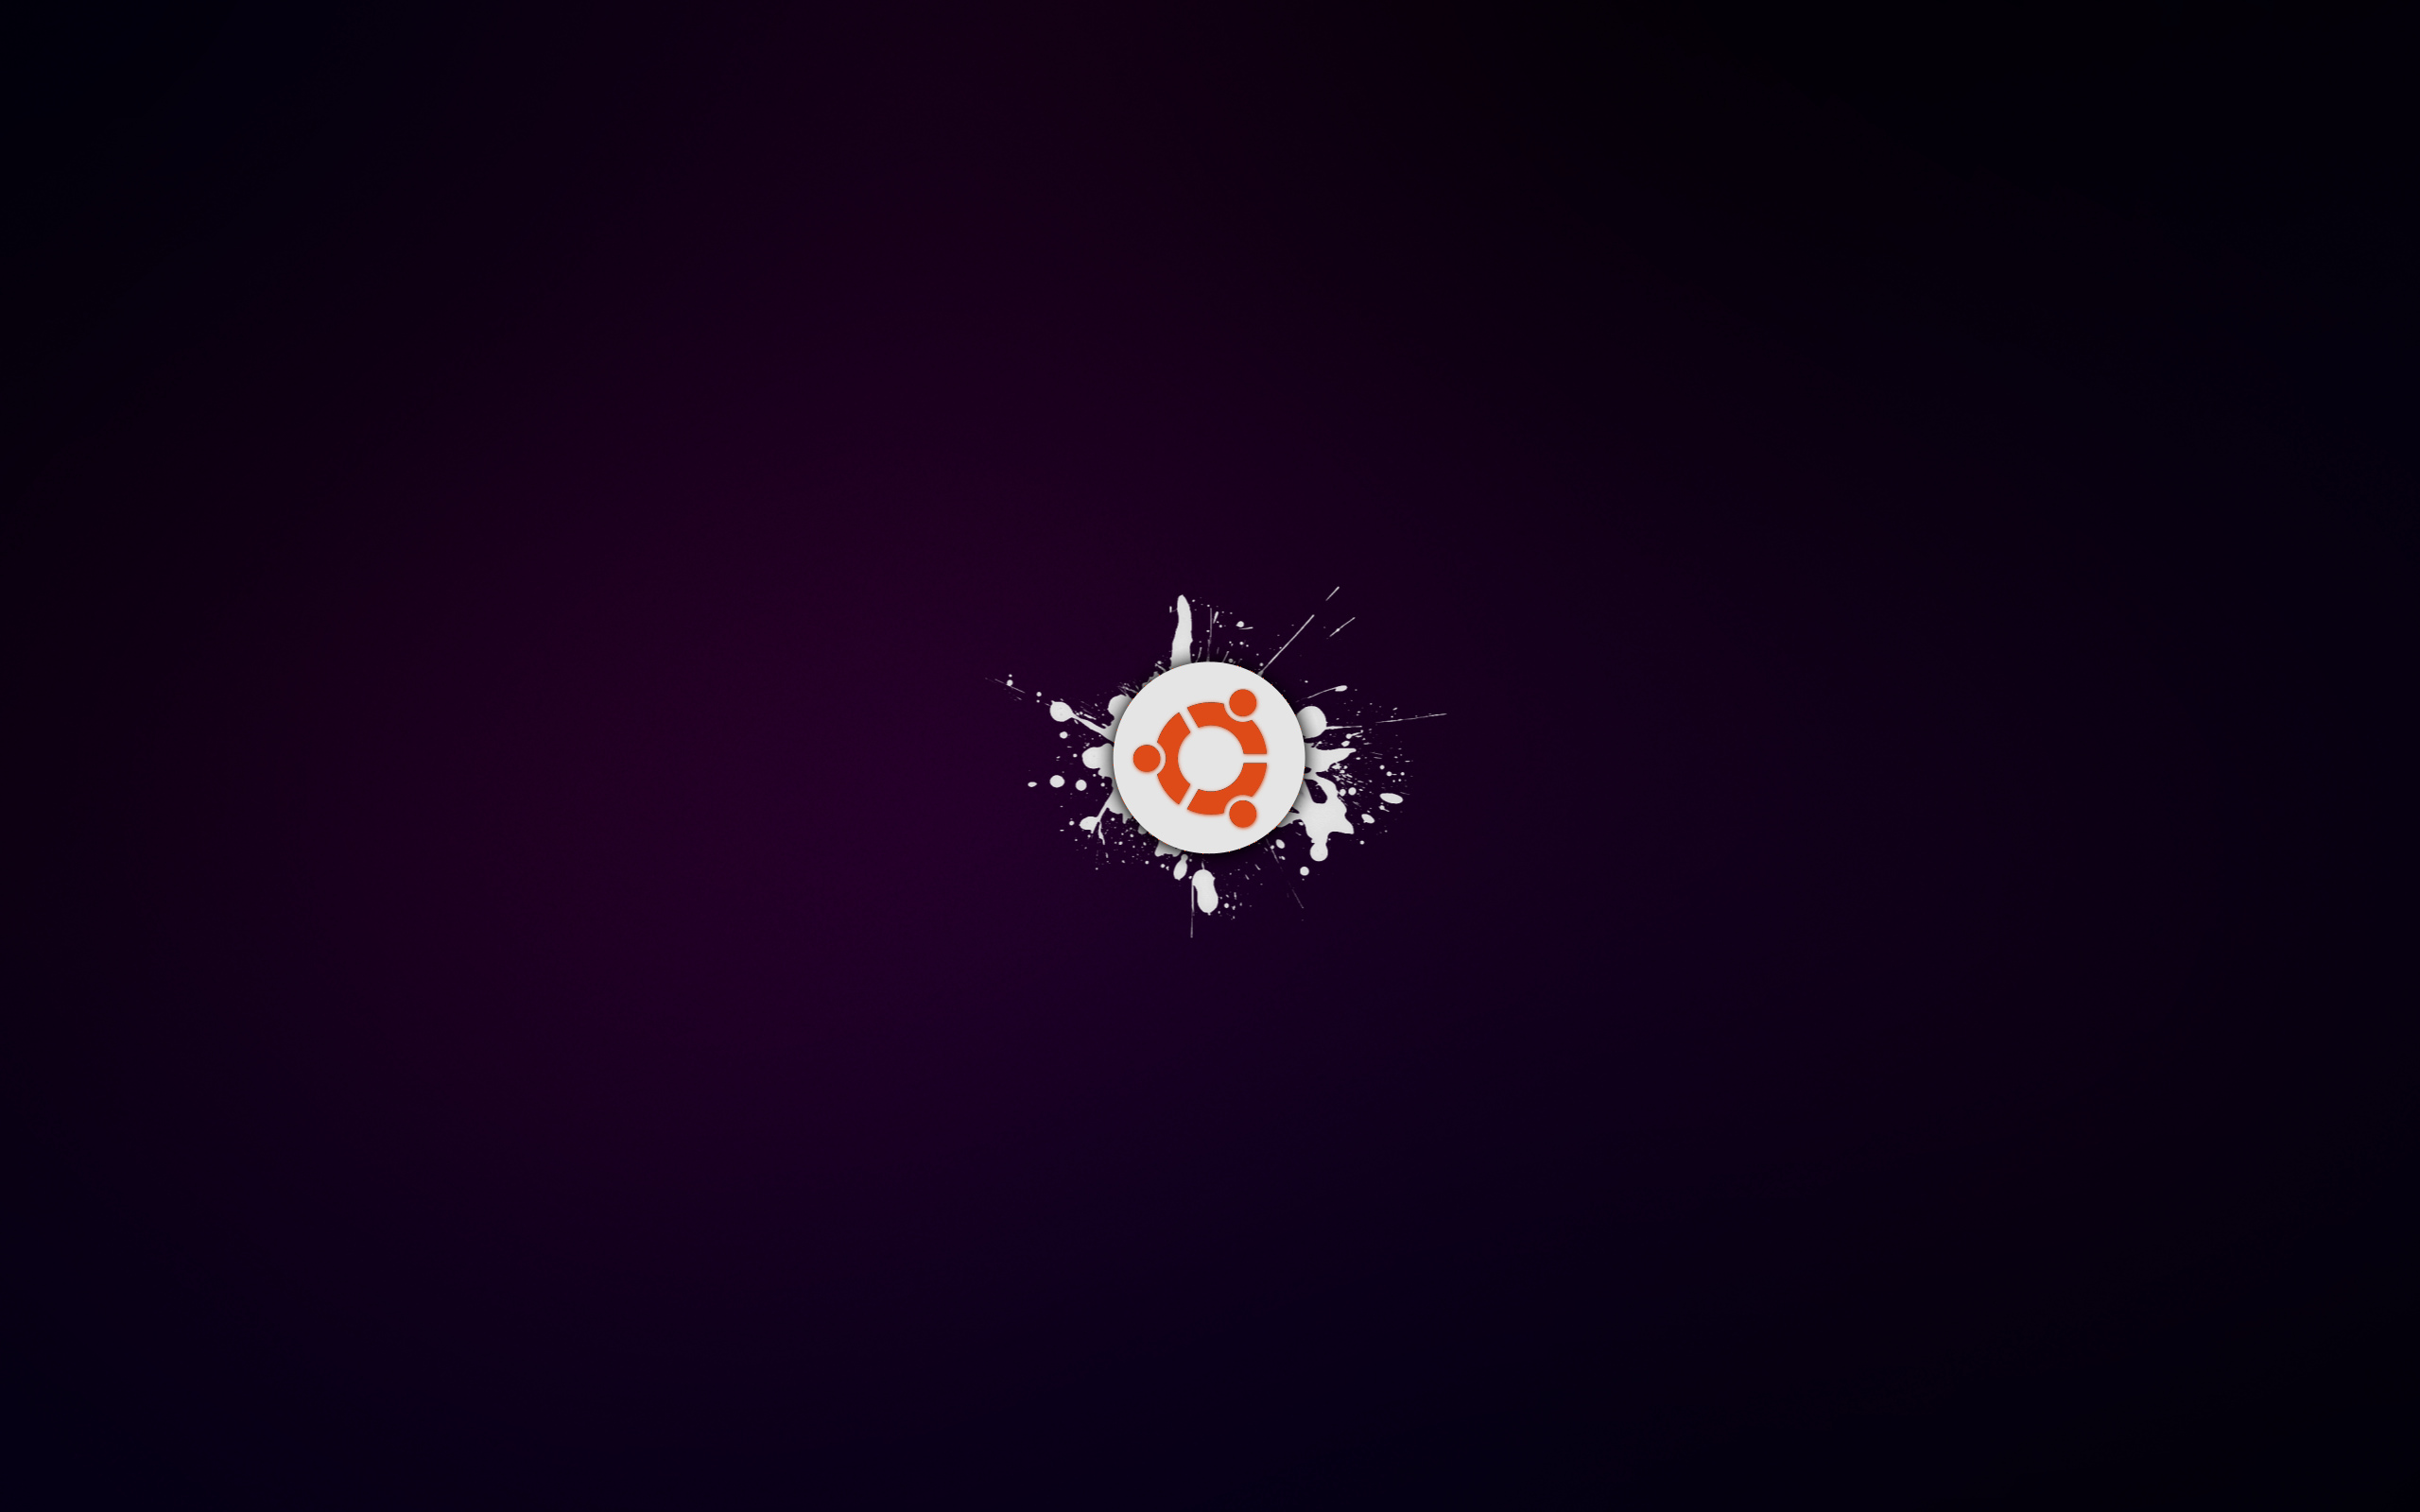 Ubuntu Hd wallpaper 251364 2560x1600